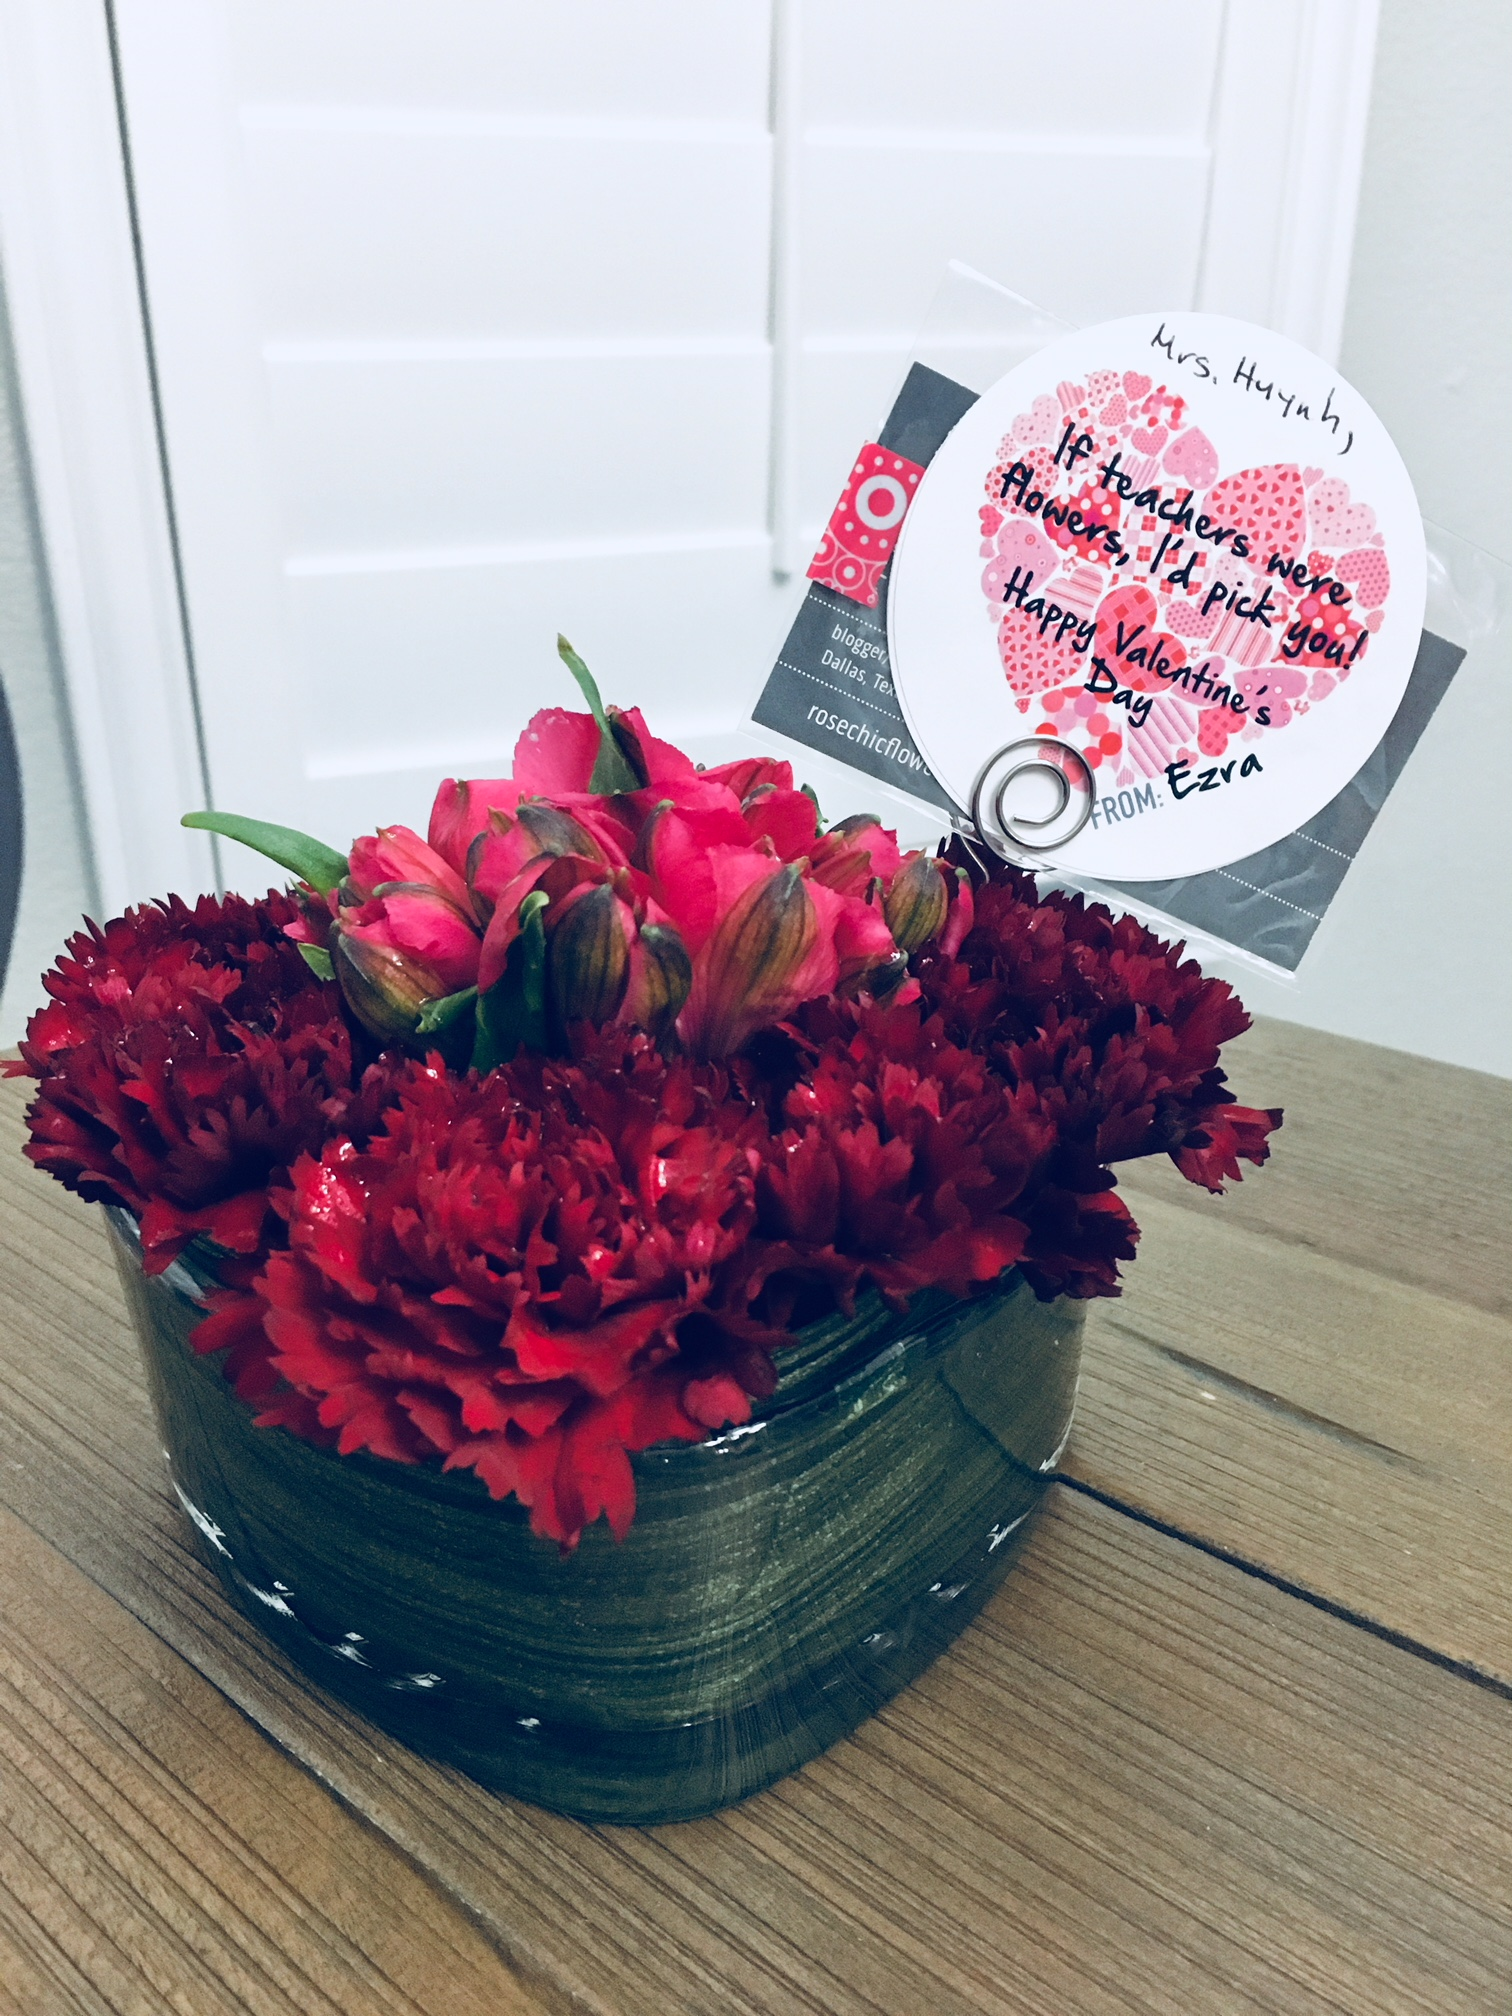 Teacher Valentine gifts, Teacher Appreciation ideas, DIY teacher gifts